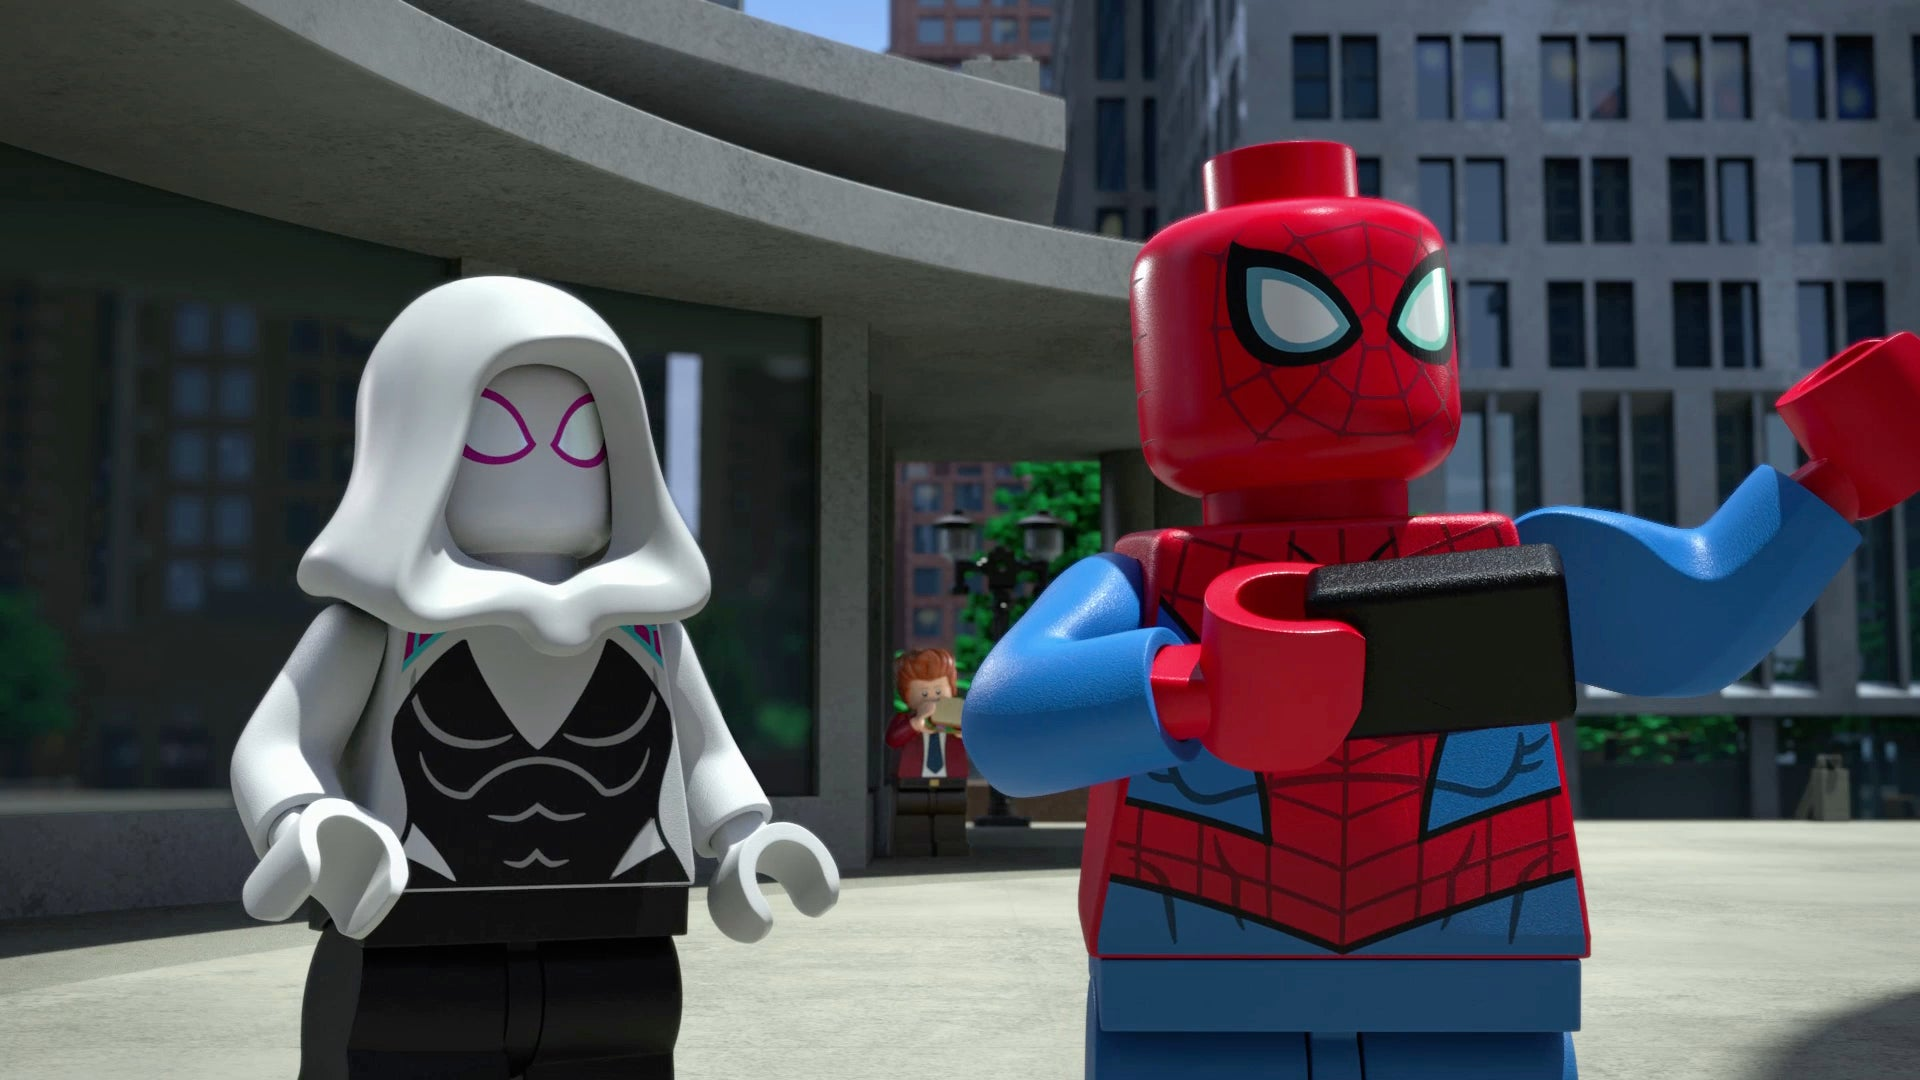 Actually, Spider-Gwen Is The Name Of The Comic